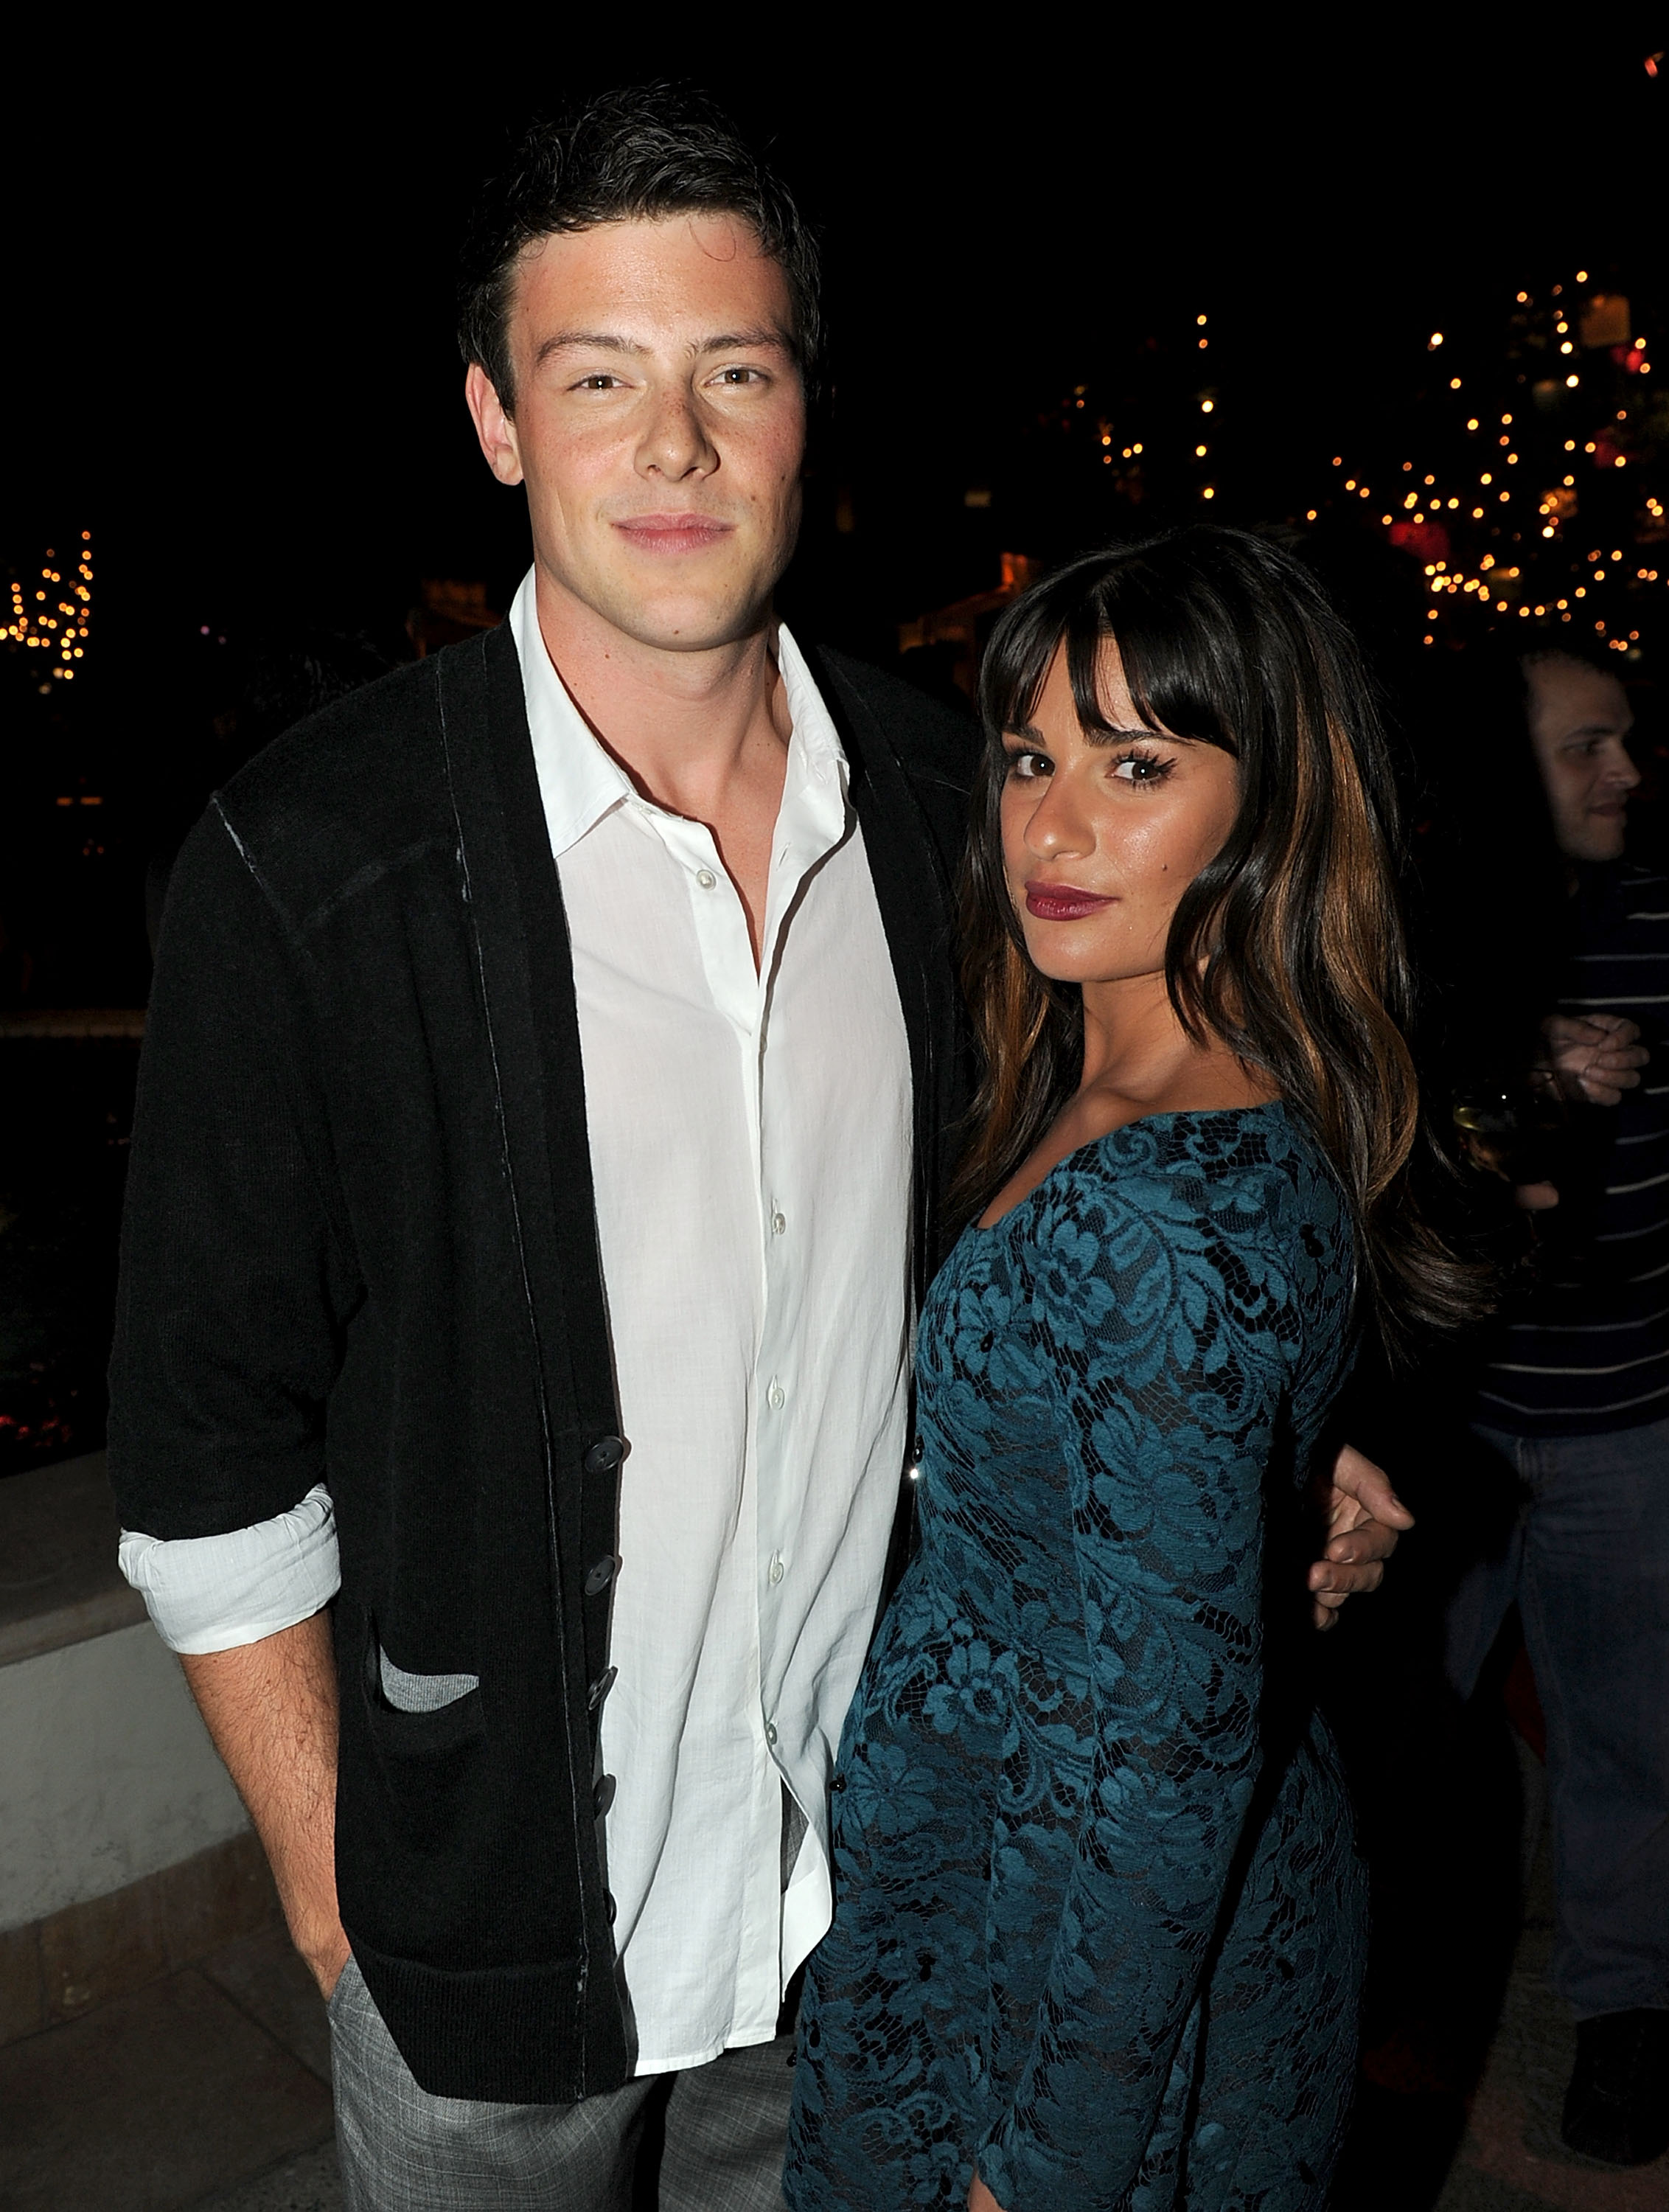 Actors Cory Monteith (L) and Lea Michele attend the premiere of 20th Century Fox's 'Glee' Season 2 held at Paramount Studios on September 7, 2010 in Hollywood, California.